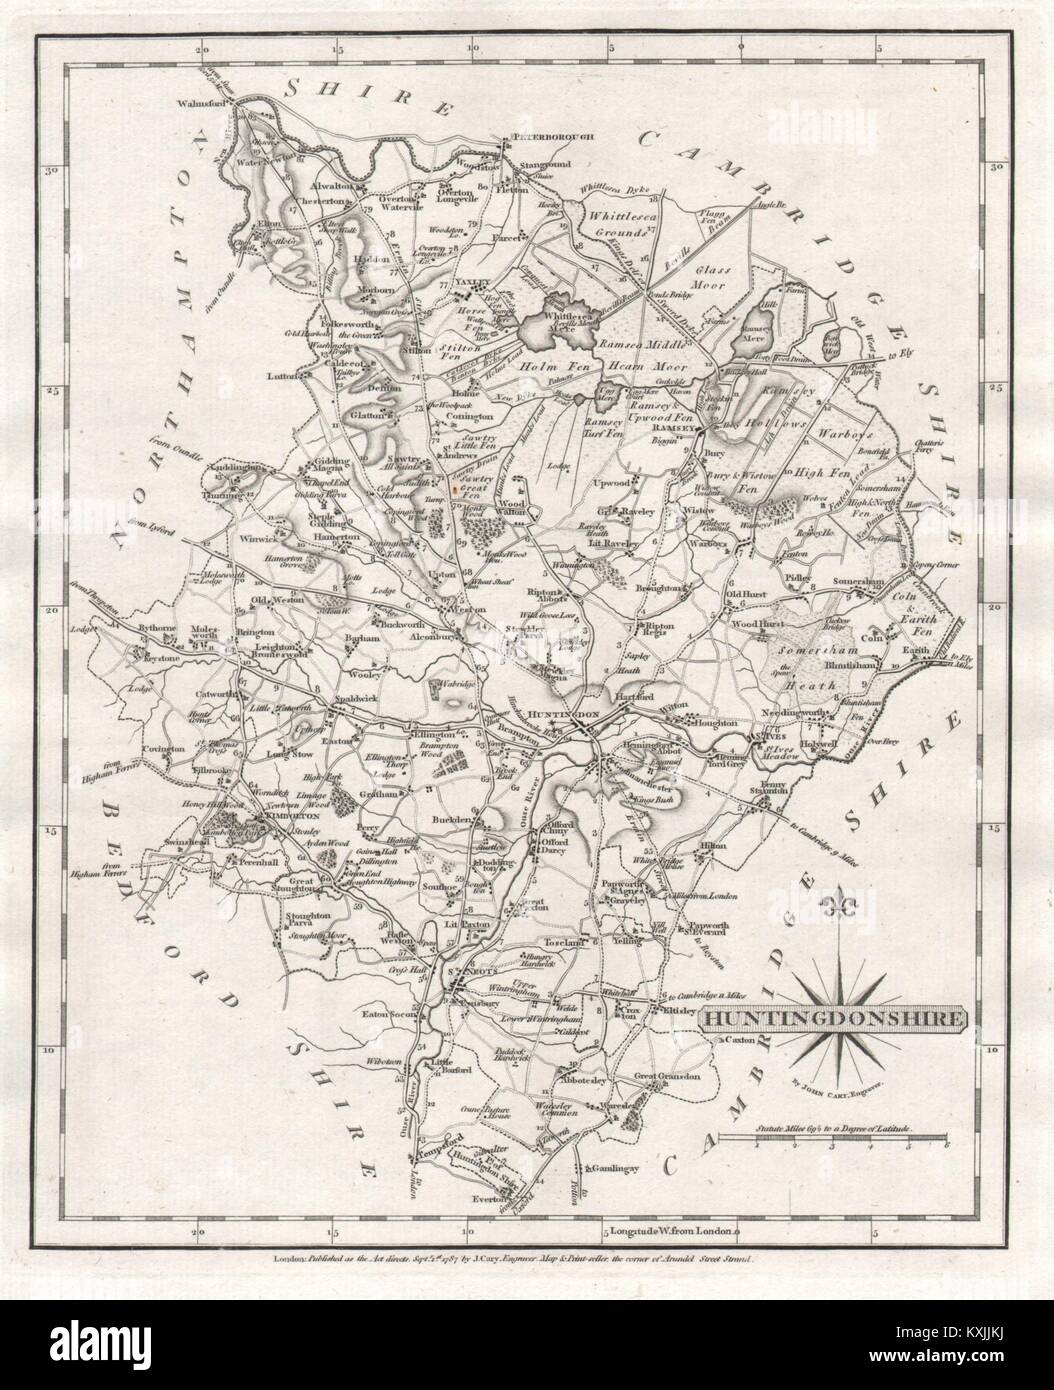 Helpful Antique County Map Of Huntingdonshire By John Cary Kimbolton St Neots 1793 Art